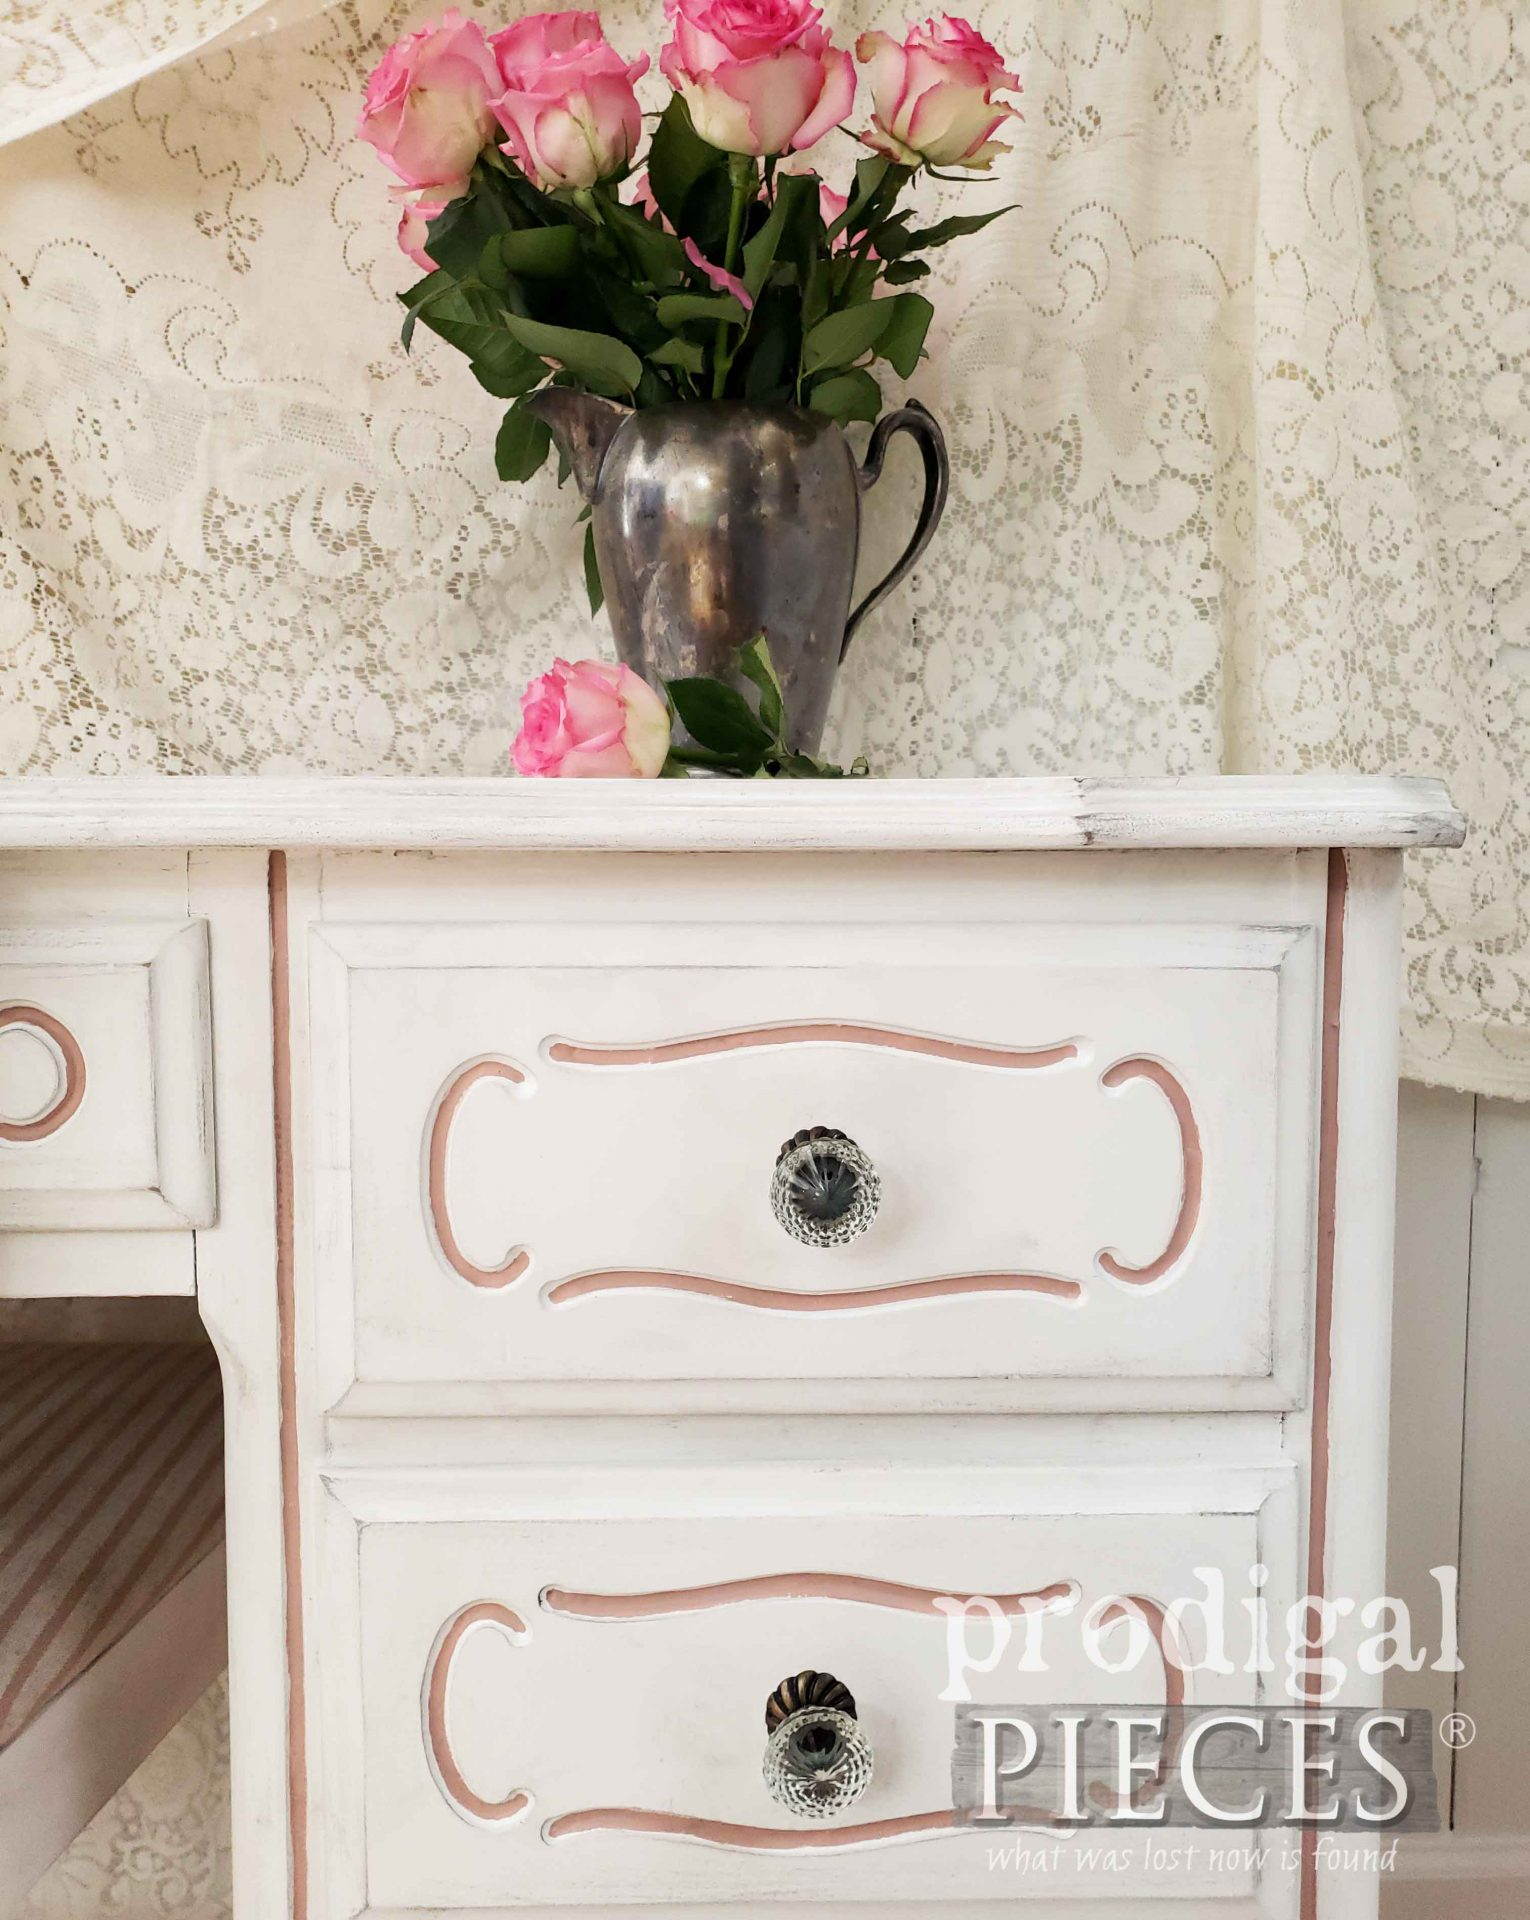 French Provincial Desk with Faceted Glass Knobs by Larissa of Prodigal Pieces | prodigalpieces.com #prodigalpieces #home #shabbychic #furniture #homedecor #diy